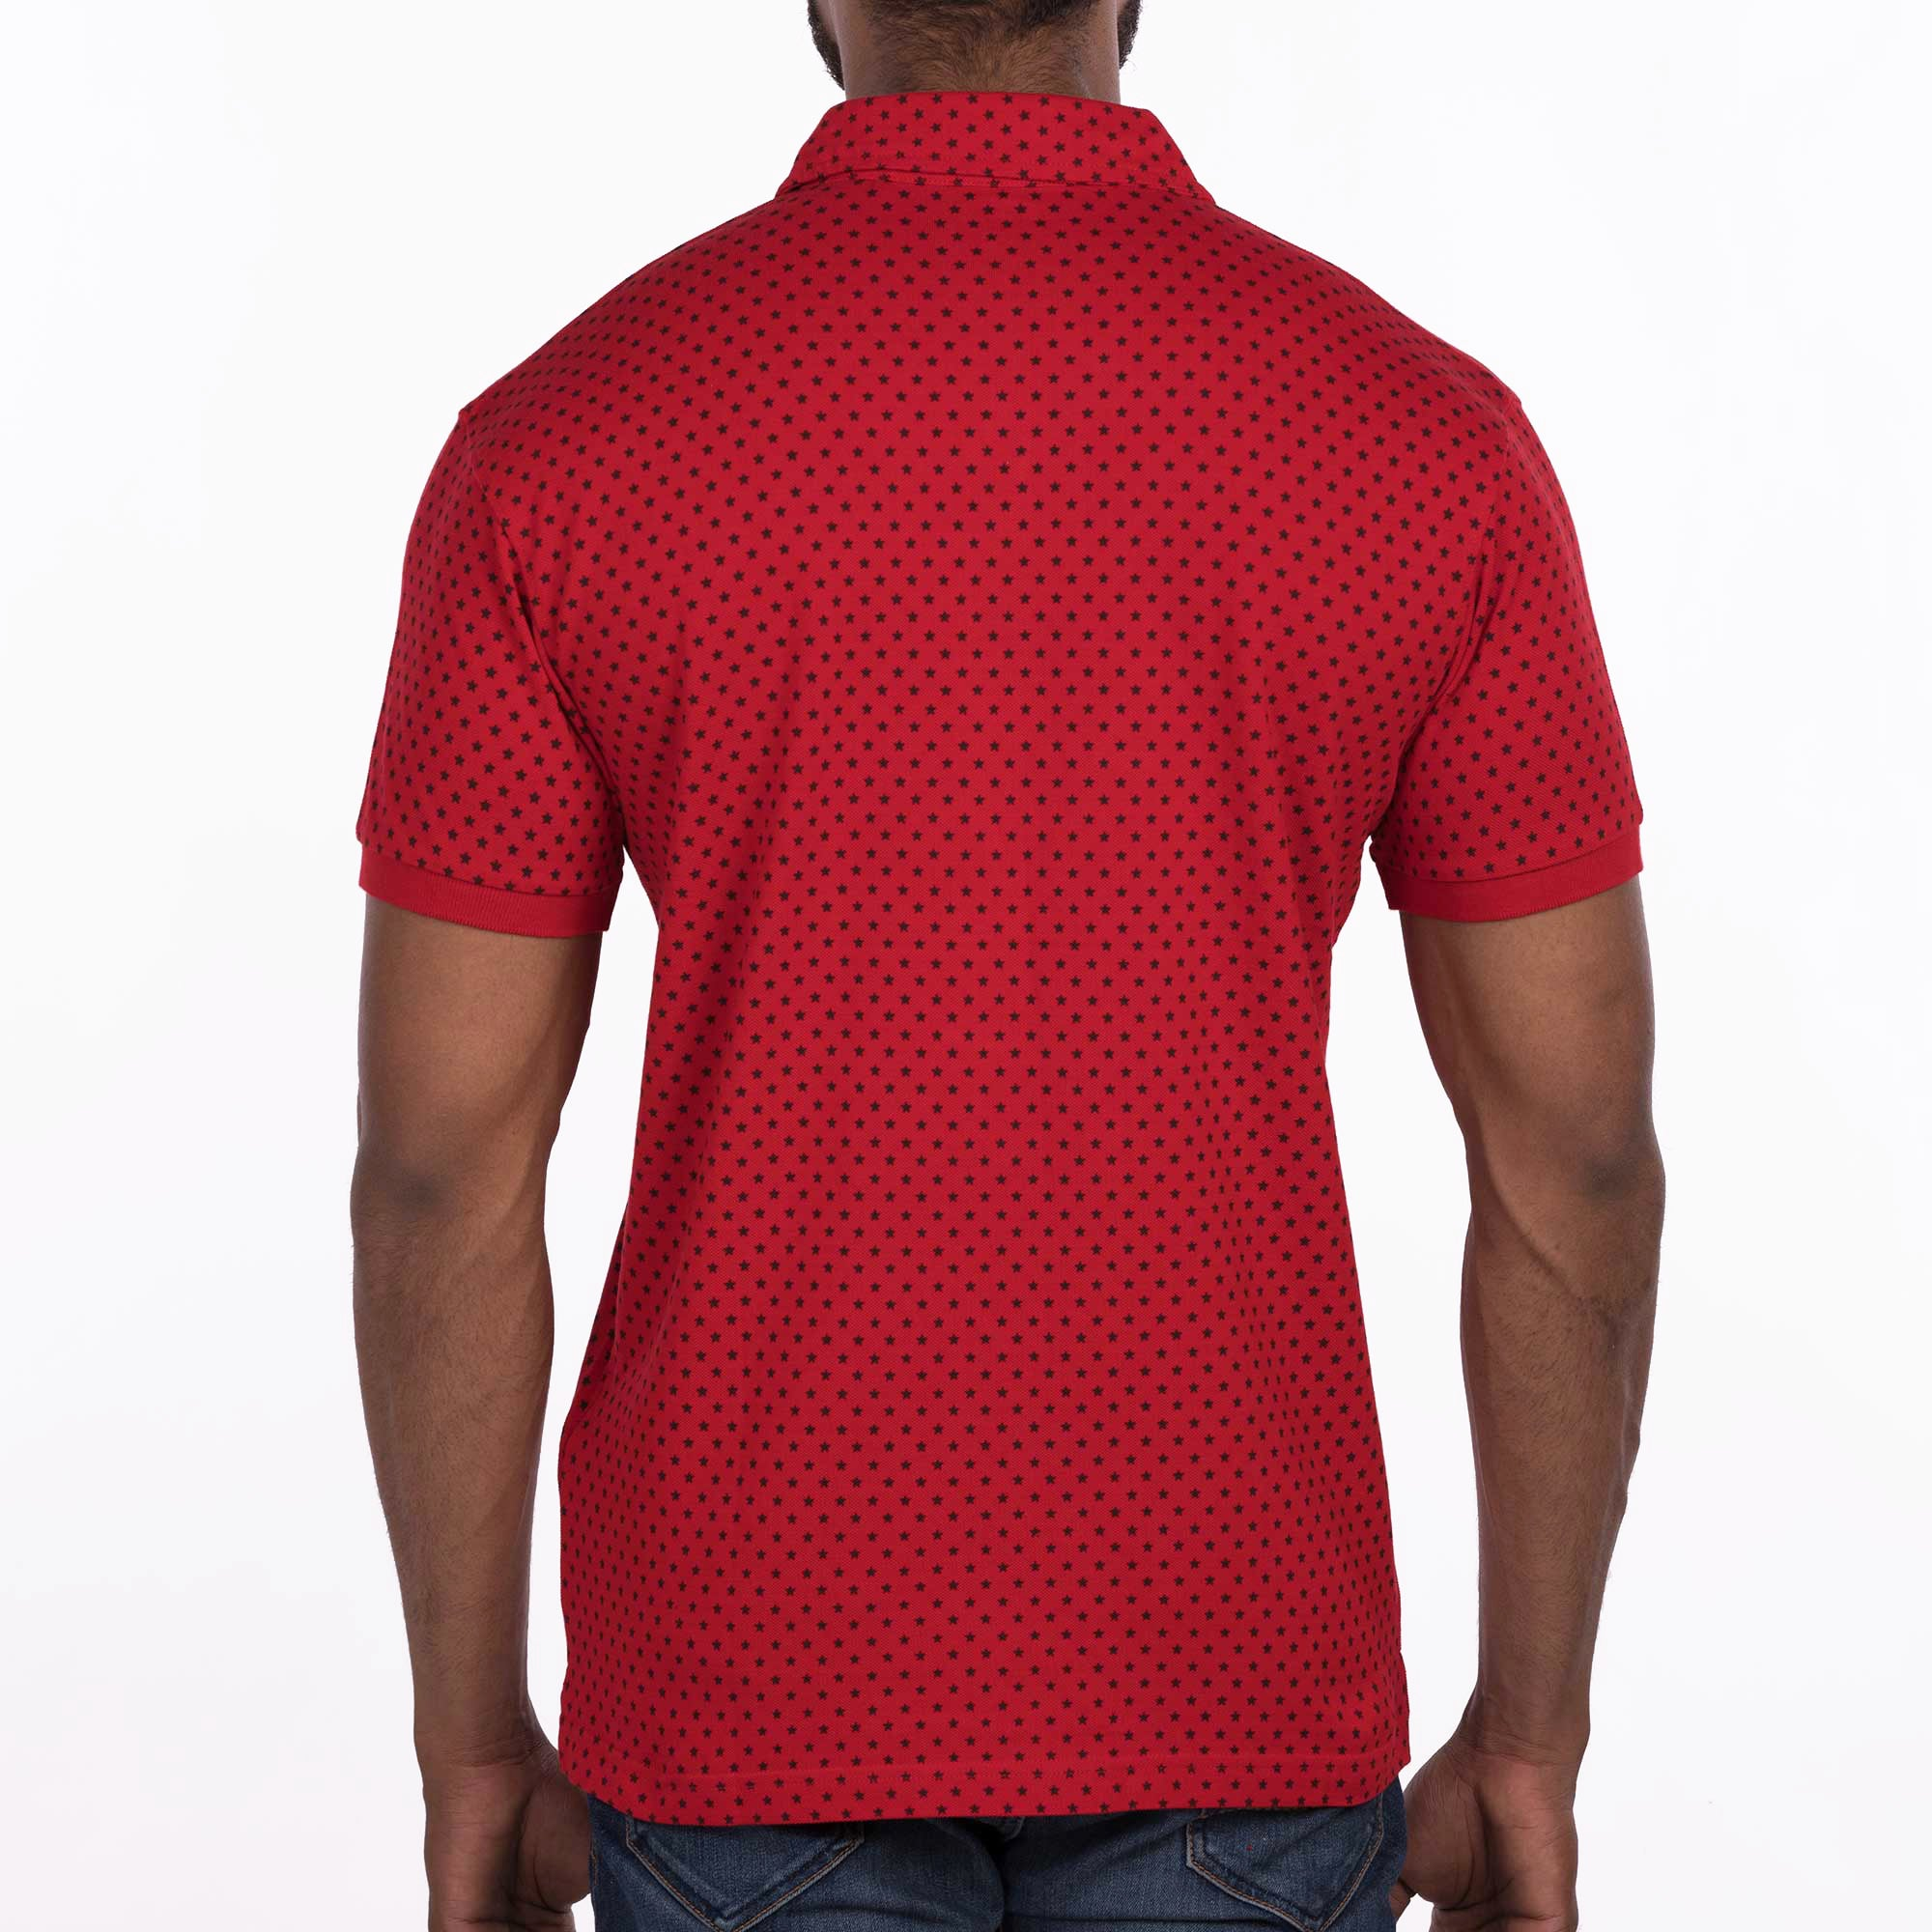 DB058 Polo Tee Shirt - Red